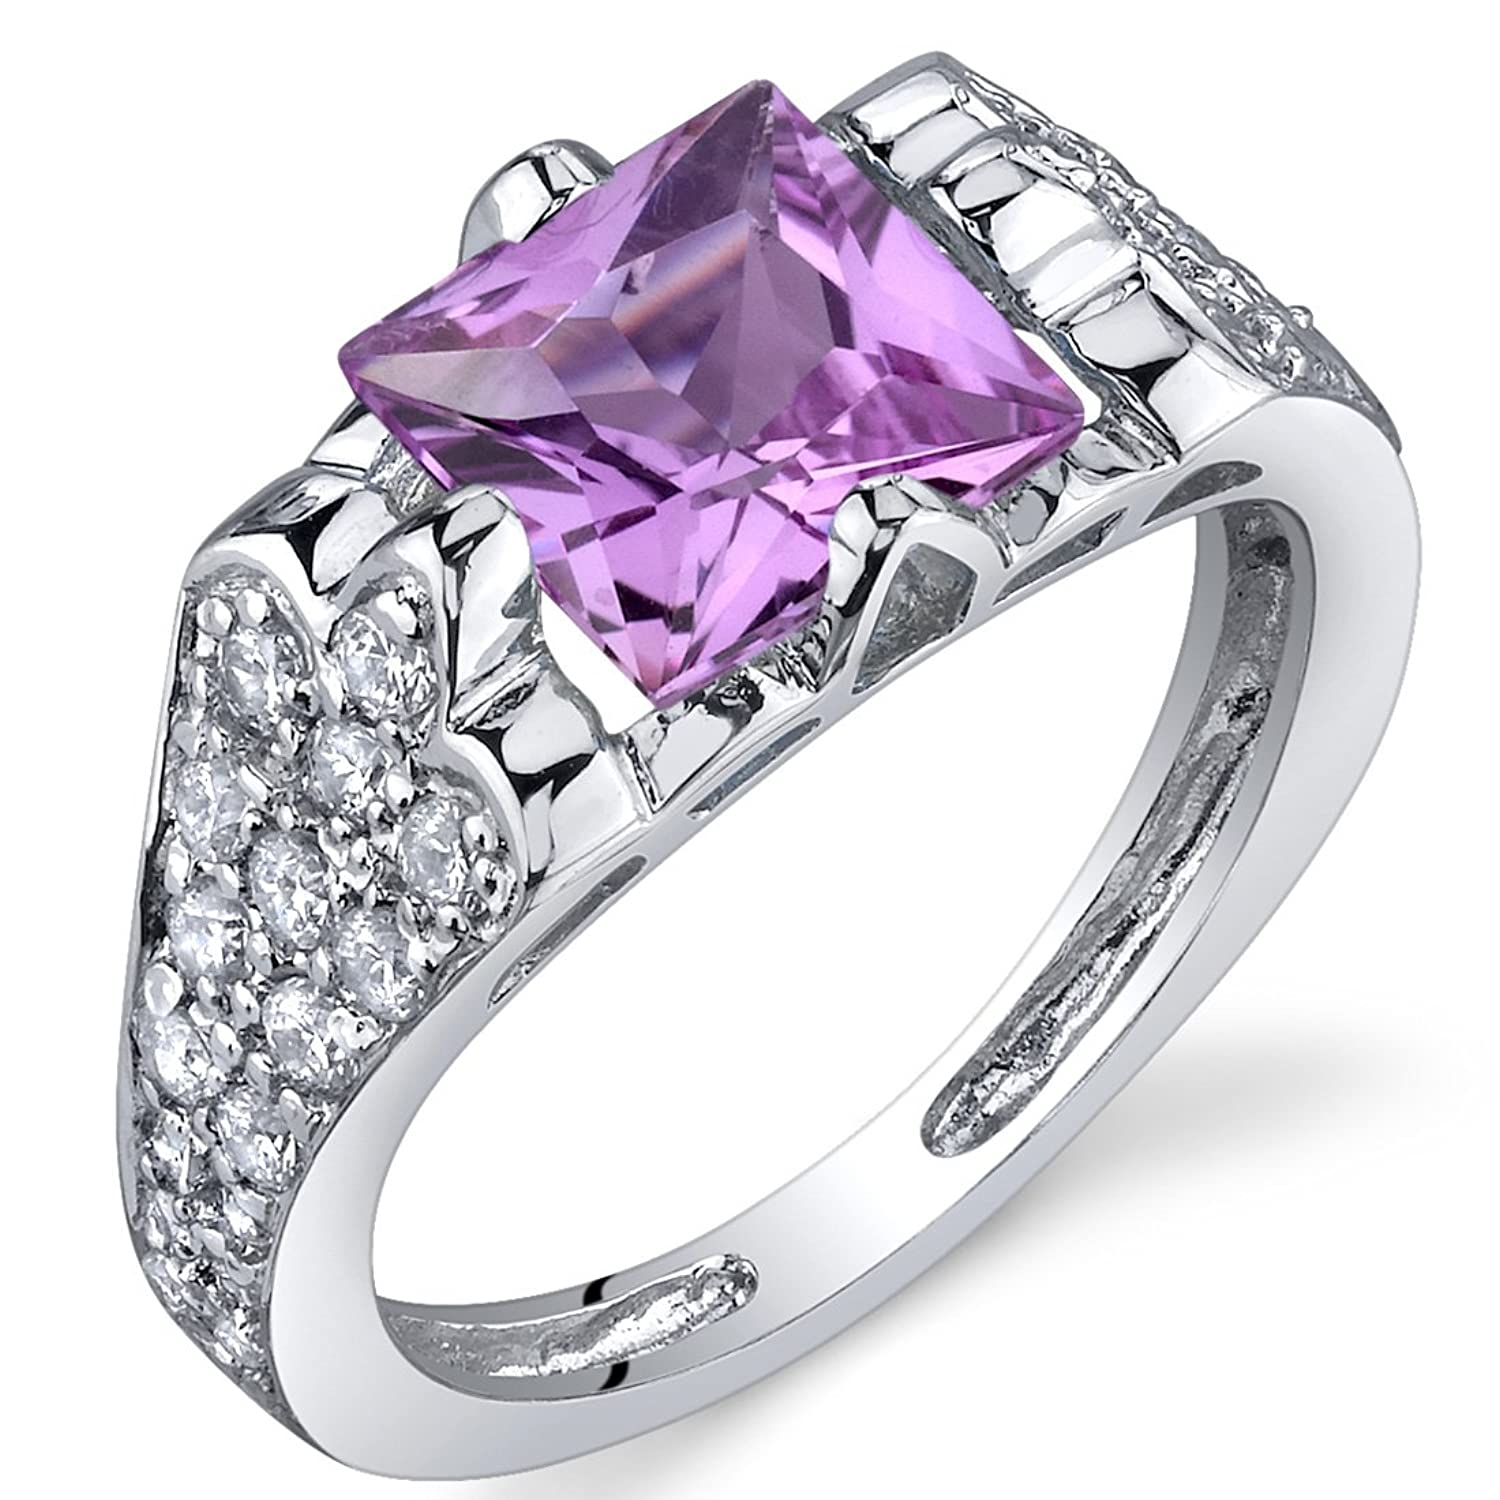 Created Pink Sapphire Ring Sterling Silver Rhodium Nickel Finish Princess Cut 2.00 Carats Sizes 5 to 9